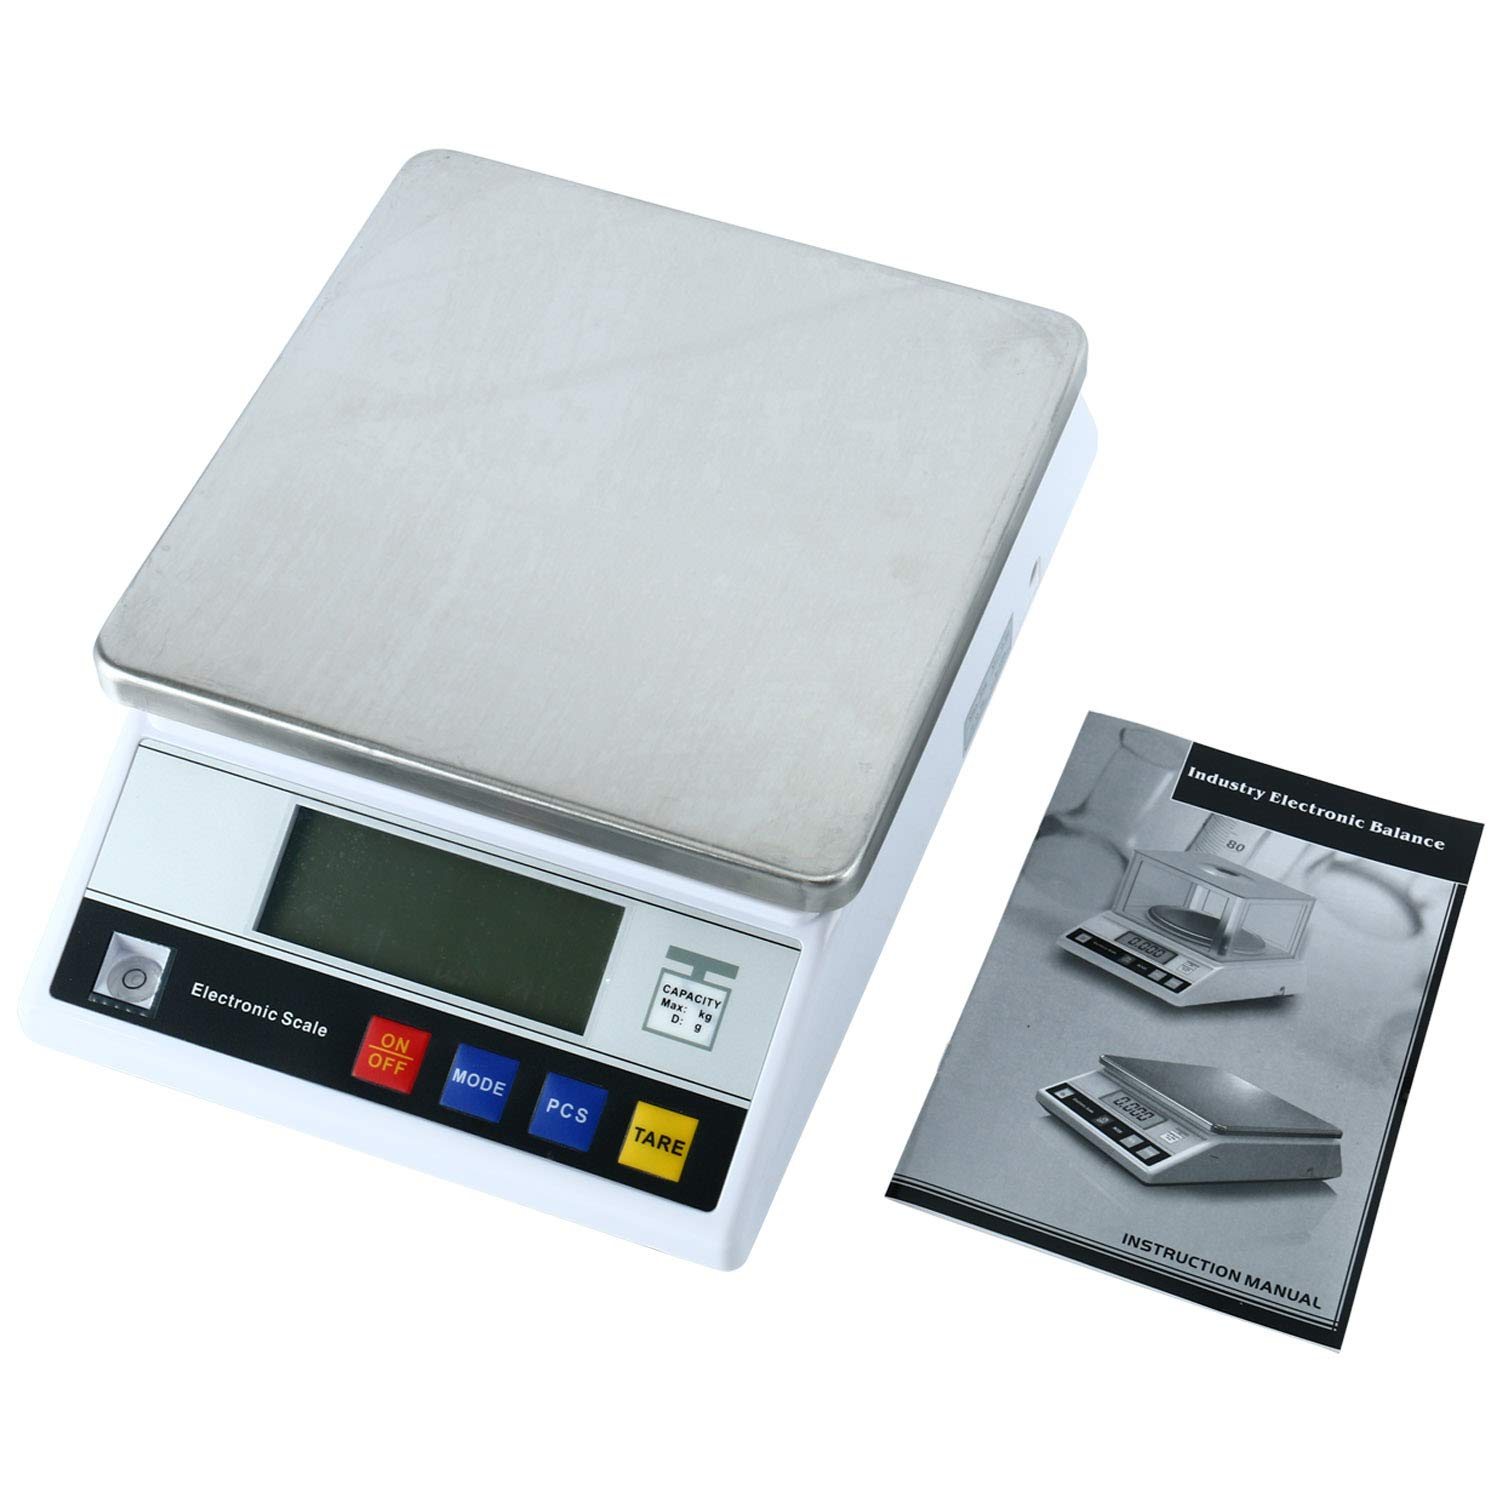 High Precision Digital Accurate Analytical Electronic Balance Laboratory Weighing Industrial Scale with Counting Function Lab Scale (5kgx0.1g)